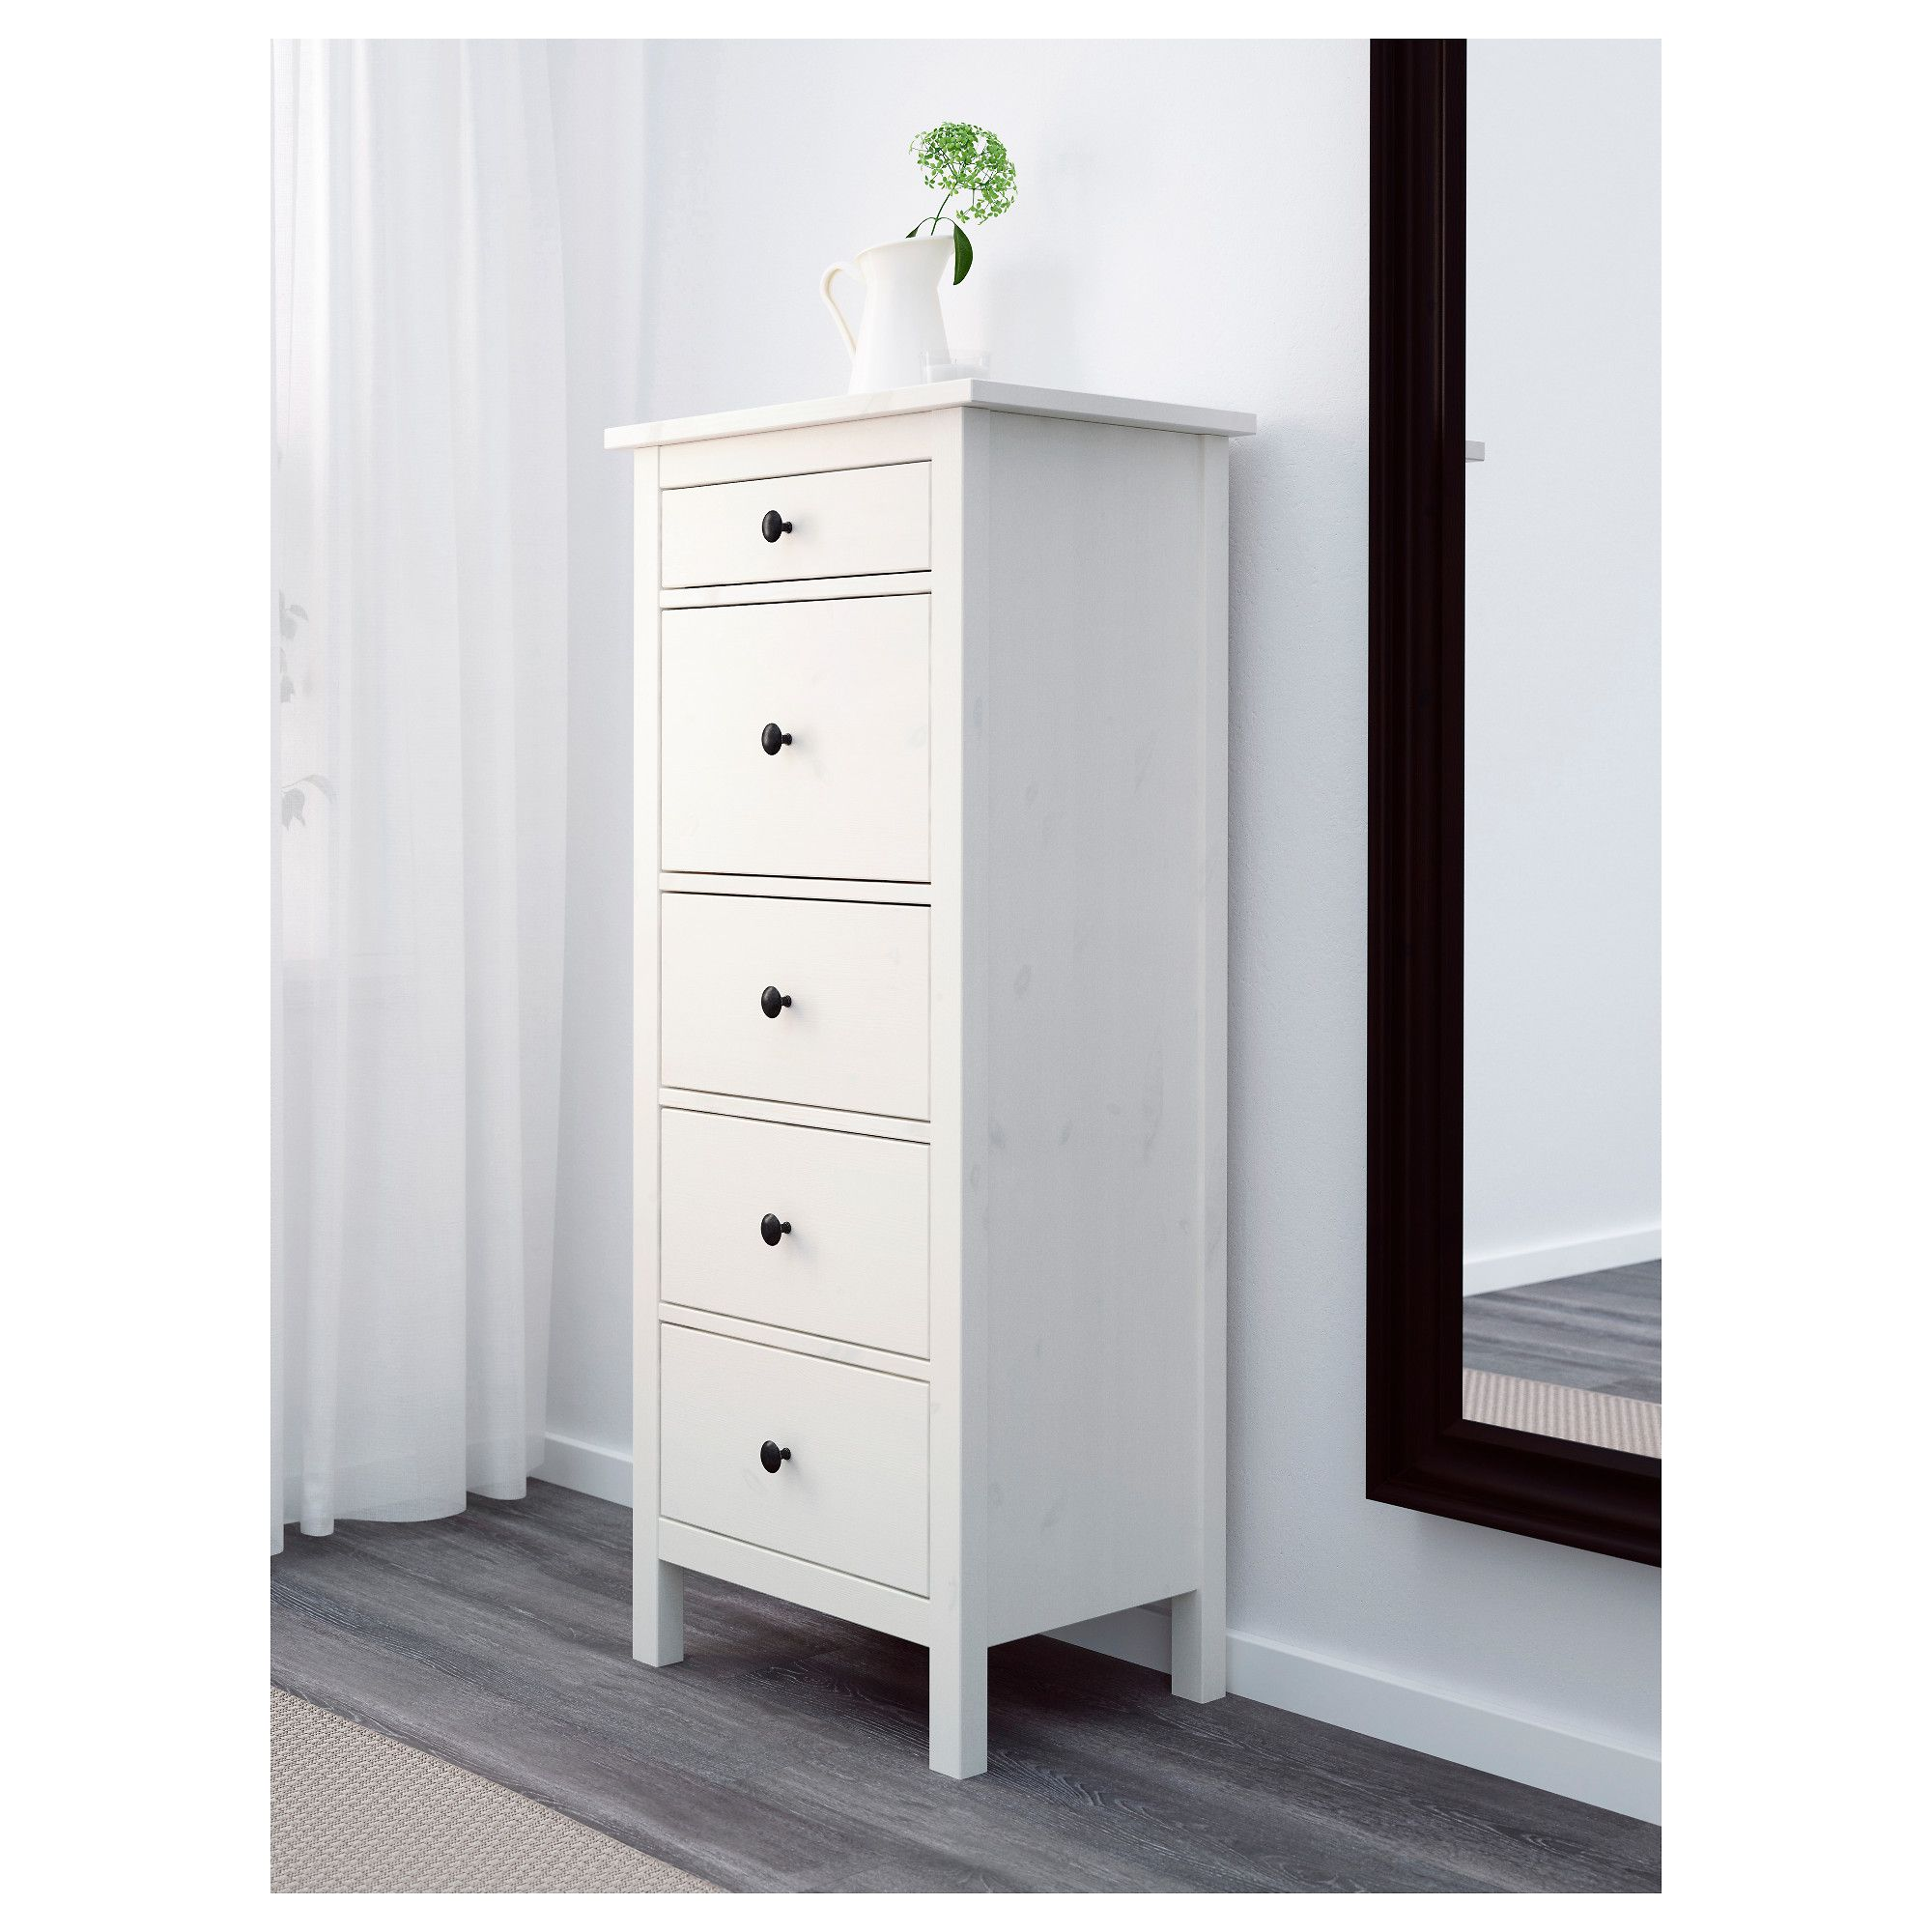 Furniture And Home Furnishings Hemnes 5 Drawer Chest White Chests